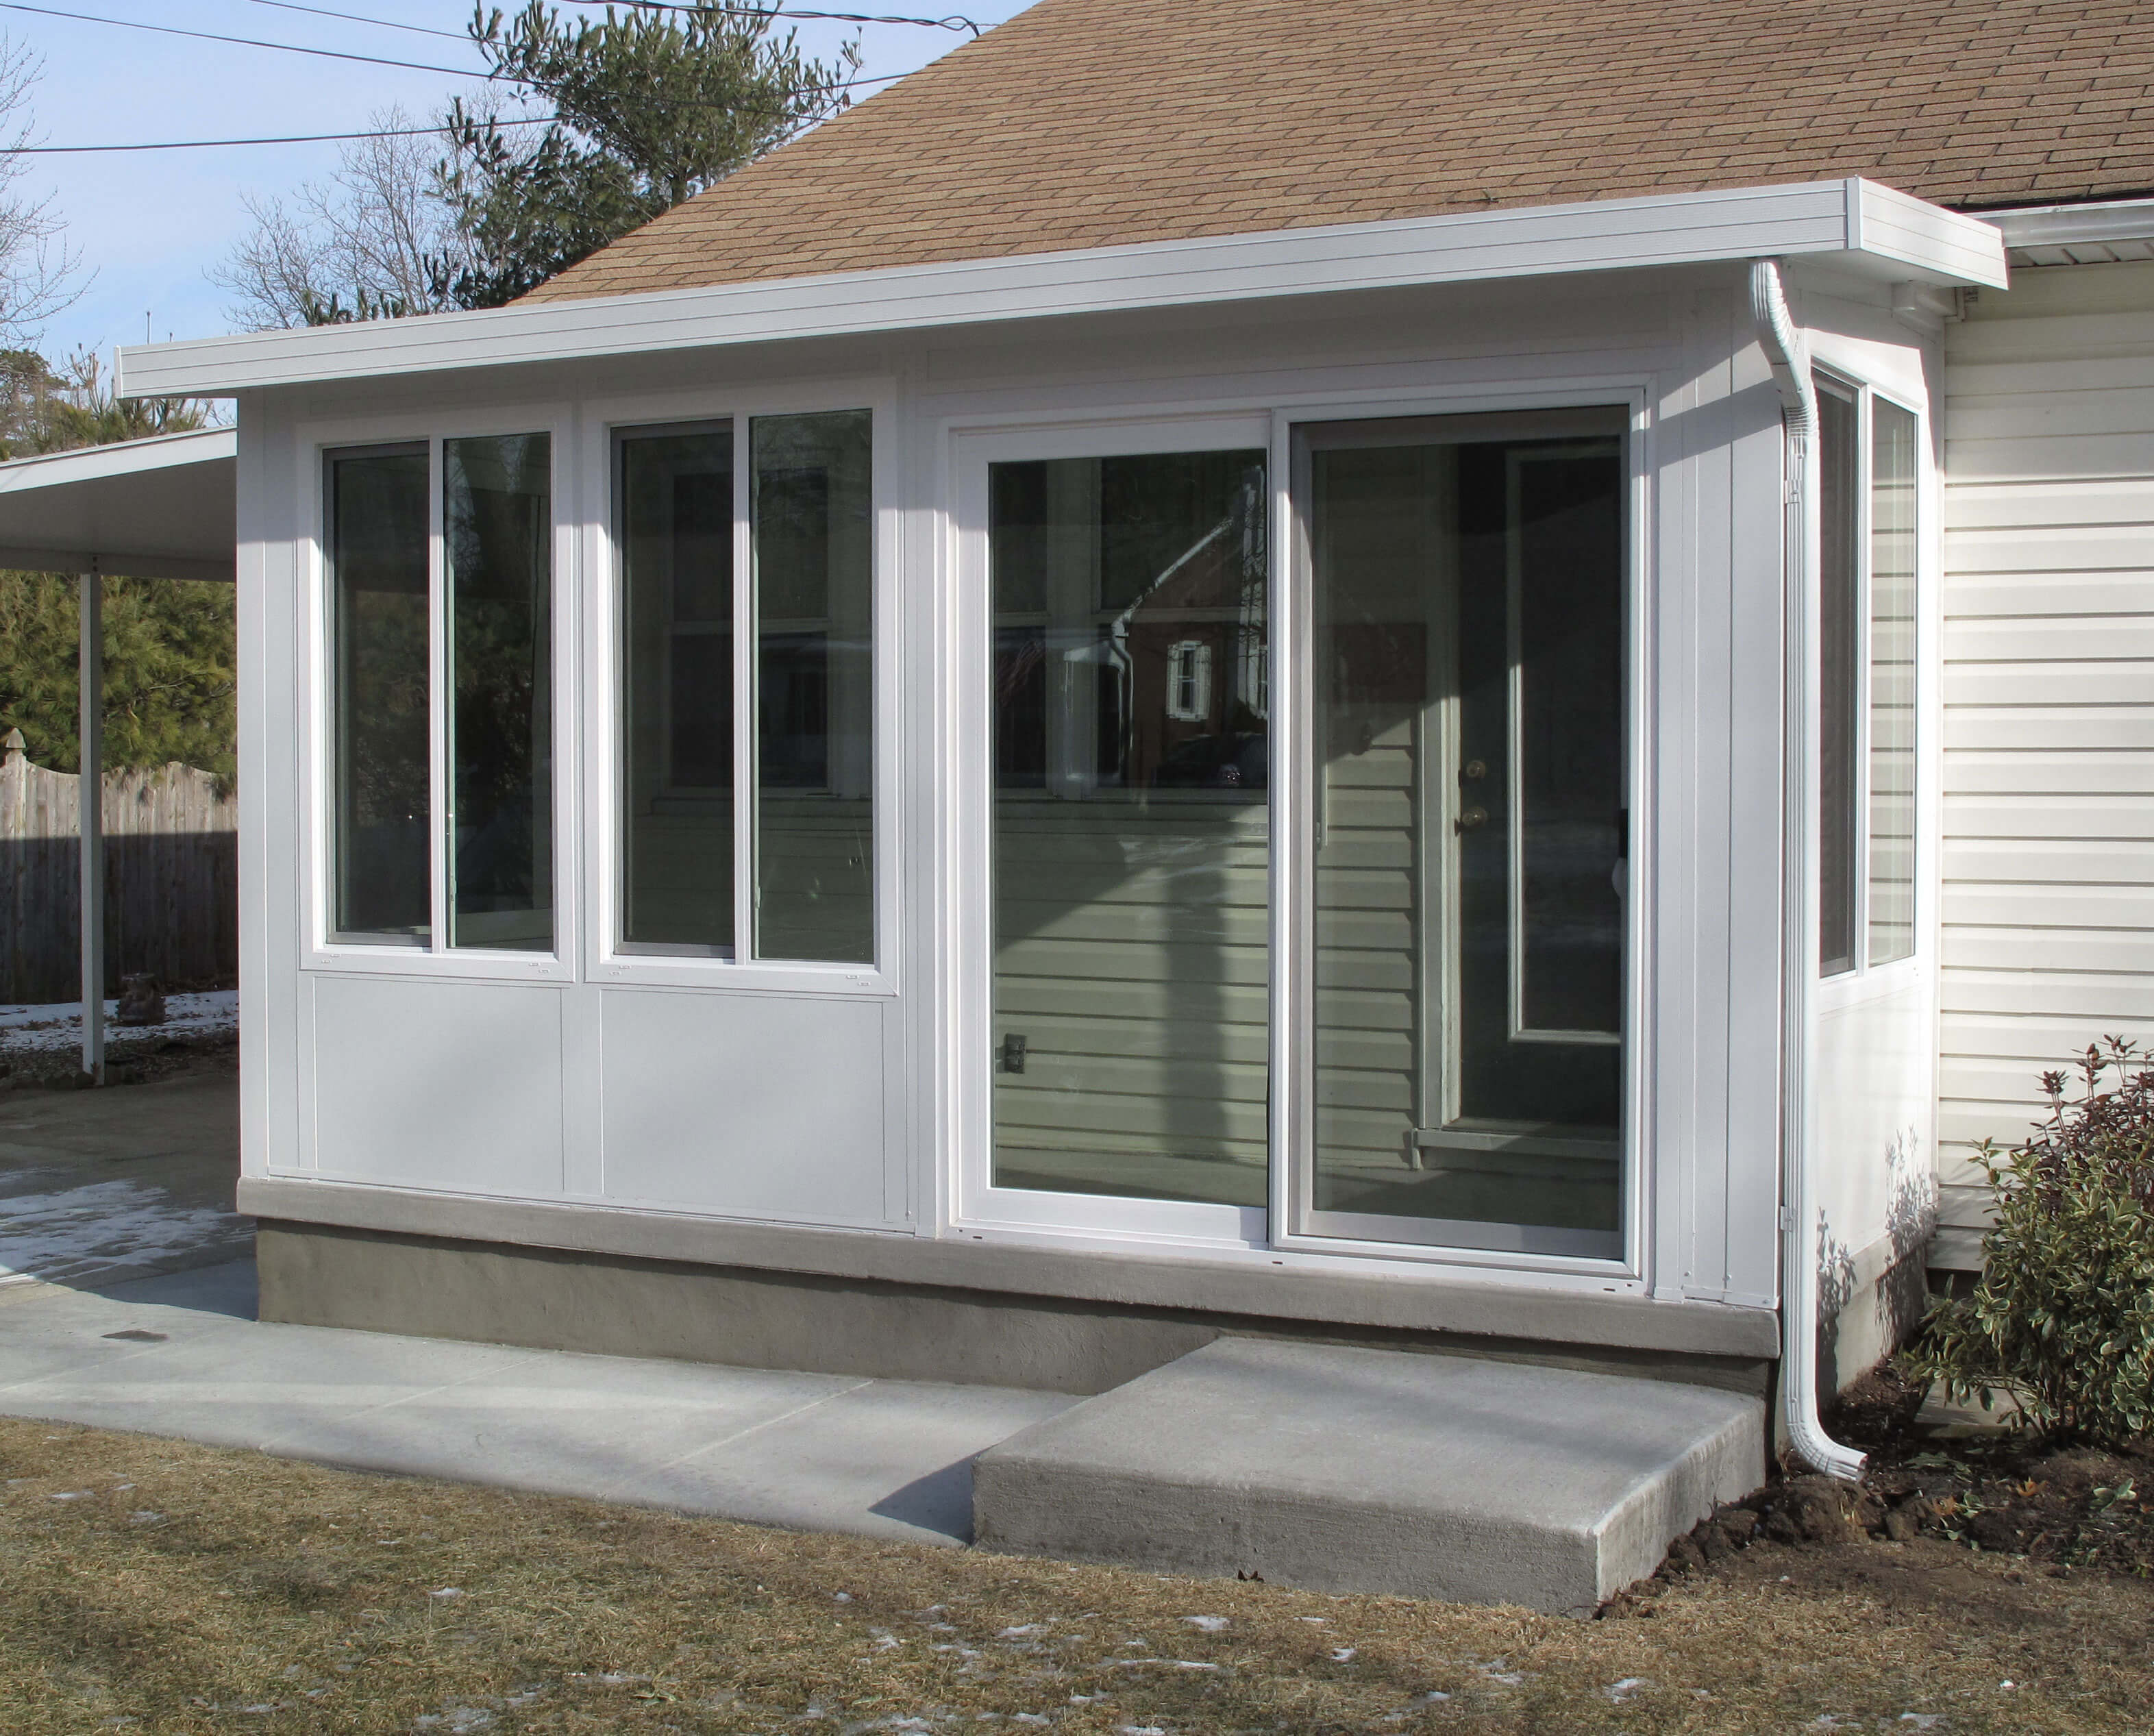 Awning contractor Cape May NJ | Patio Rooms | MiamiSomers on Outdoor Patio Enclosures  id=65970